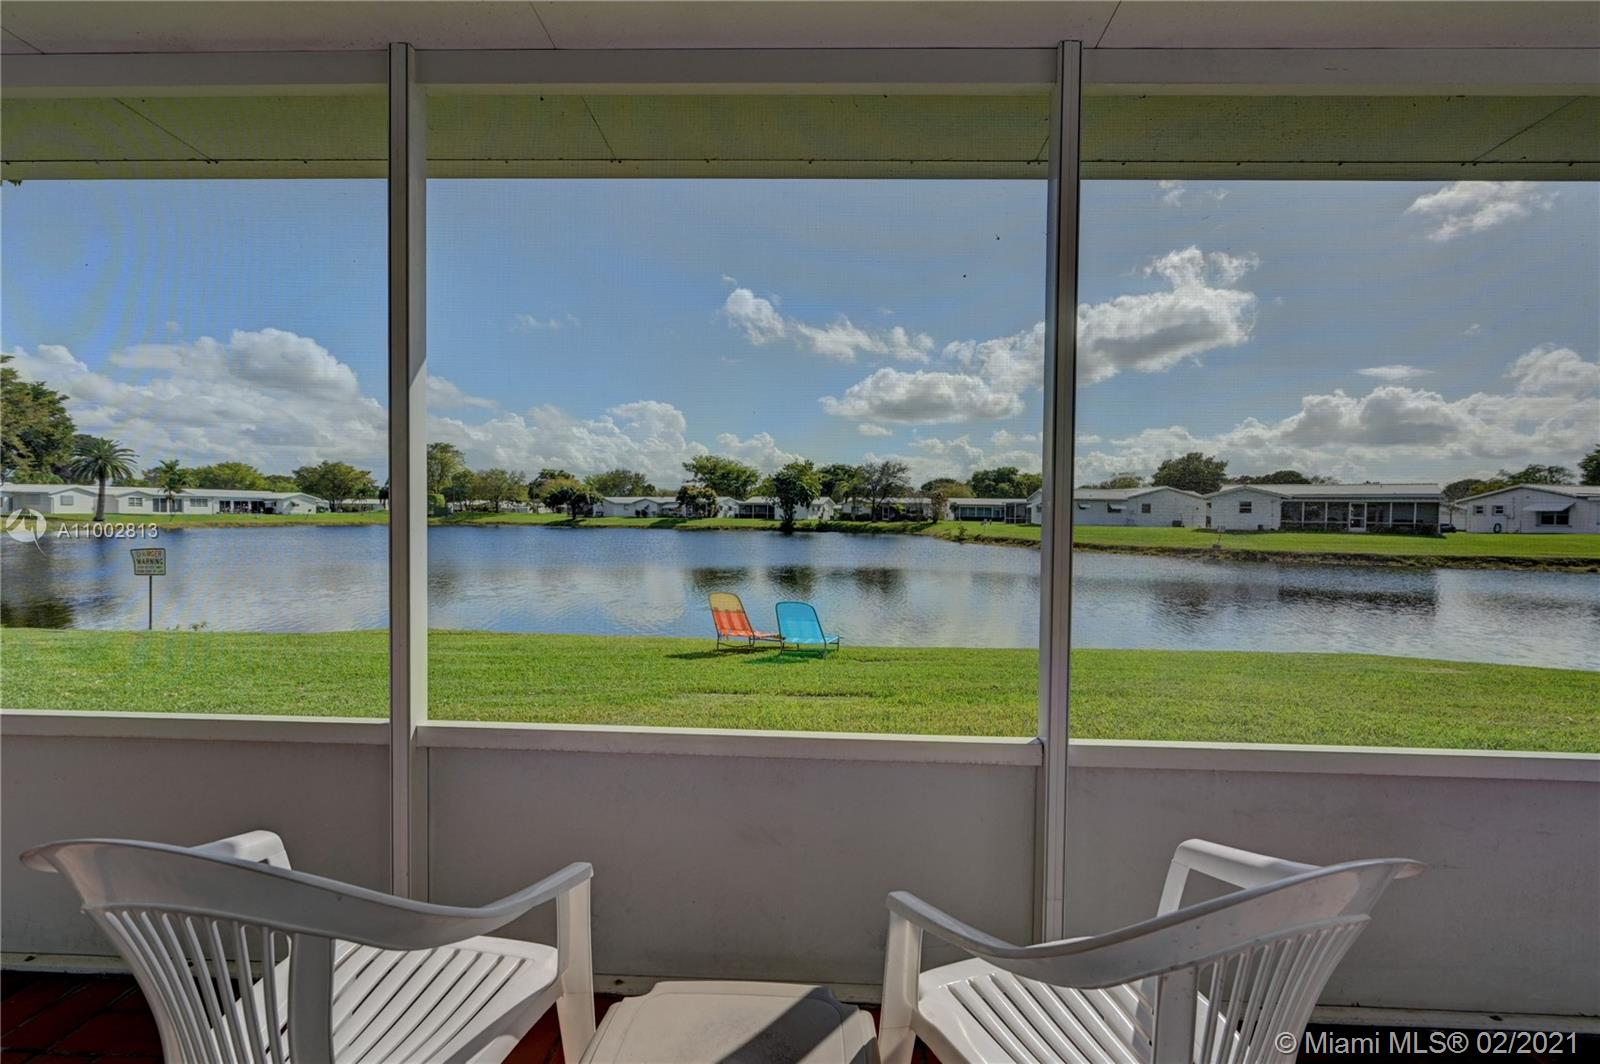 WATER,WATER EVERYWHERE! Breathtaking views & sunsets from this 2 bed 2 bath home! A waterfront gem--one of few directly positioned on wide tranquil lake with highly sought after north/south setting.  Generous 55+ community amenities--2 heated pools & spas, tennis courts, fitness center, clubhouse, free TV/internet, all outside maintenance, free shuttle to stores. Expanded Florida room and screened porch overlooking water with large grilling space. Upgraded LED ceilings with remote controlled fans throughout, extensive security system, walk-in closet, one car garage, doublewide driveway,  hurricane awnings/shutters, newer roof. A/C unit under warranty,  seller funded home warranty through 12/31/21. BEST OF ALL, VAST GRASSY LAKEFRONT ACCESS IS ALL YOURS!